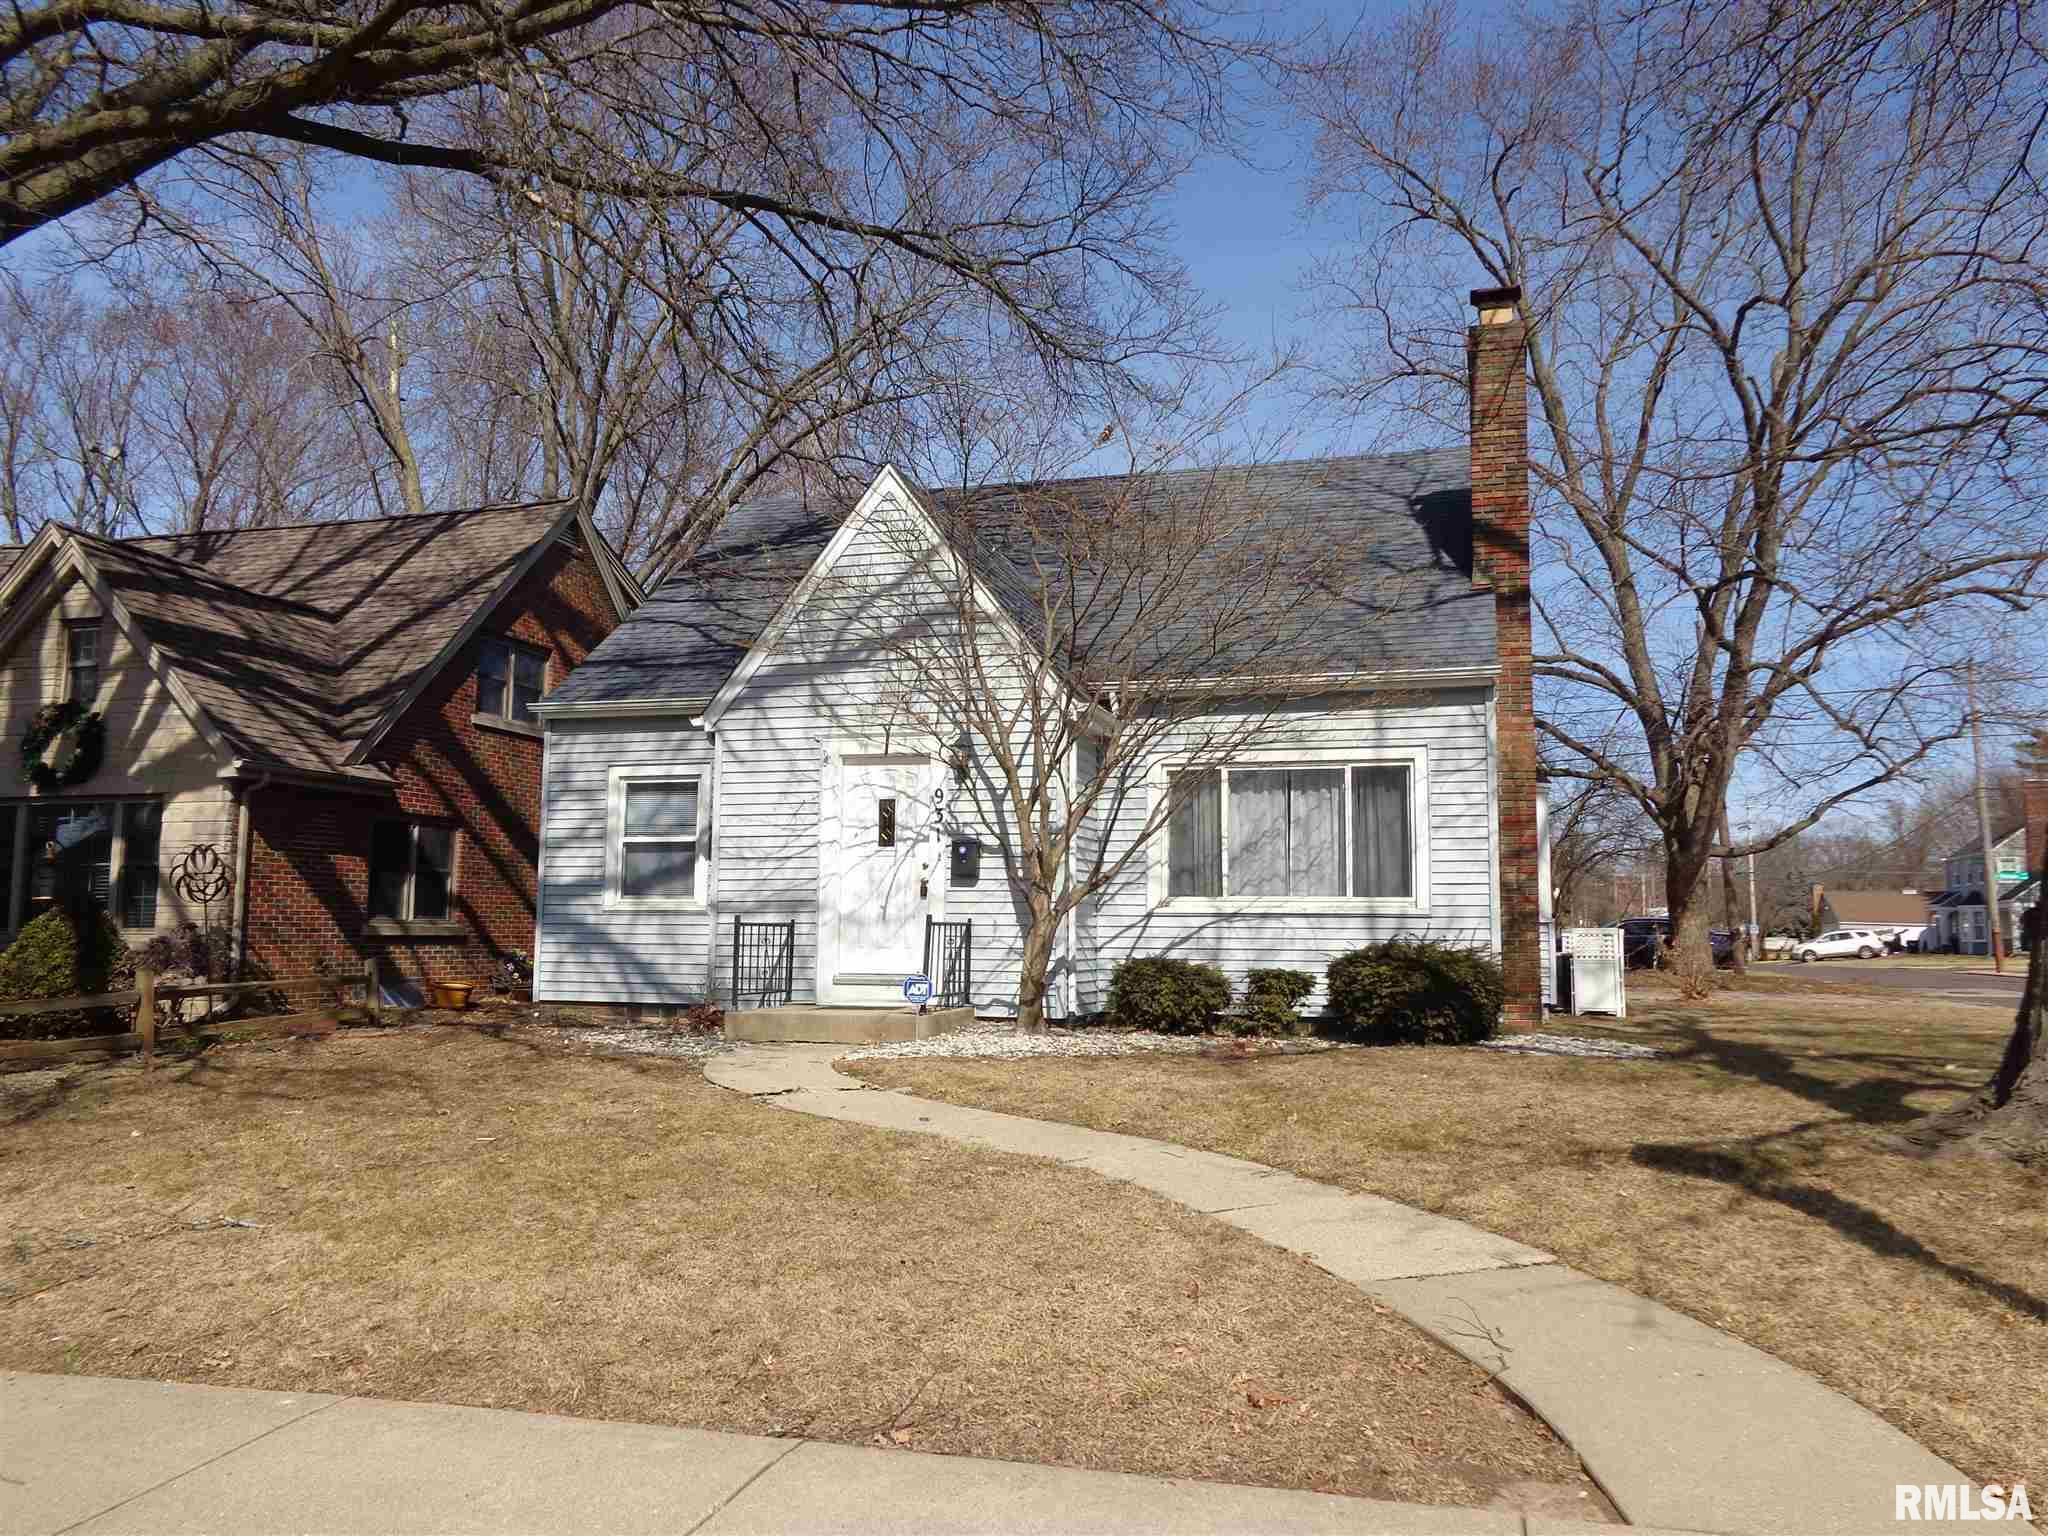 931 E RICHWOODS Property Photo - Peoria, IL real estate listing